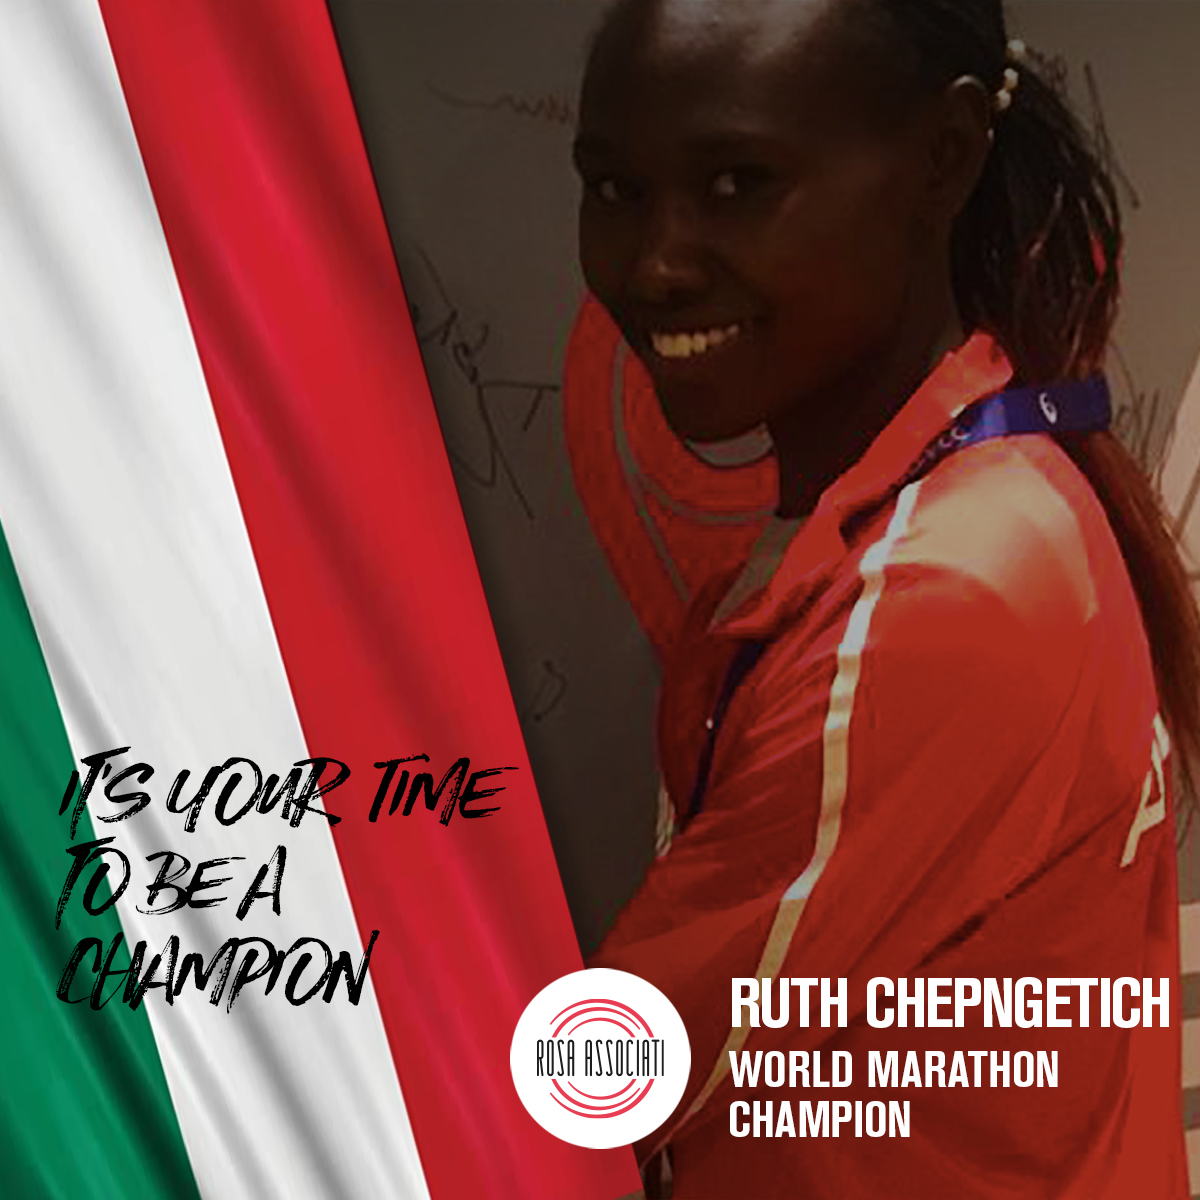 21 2020 - Campagna social We can win this race together - Ruth Chepngetich 1a